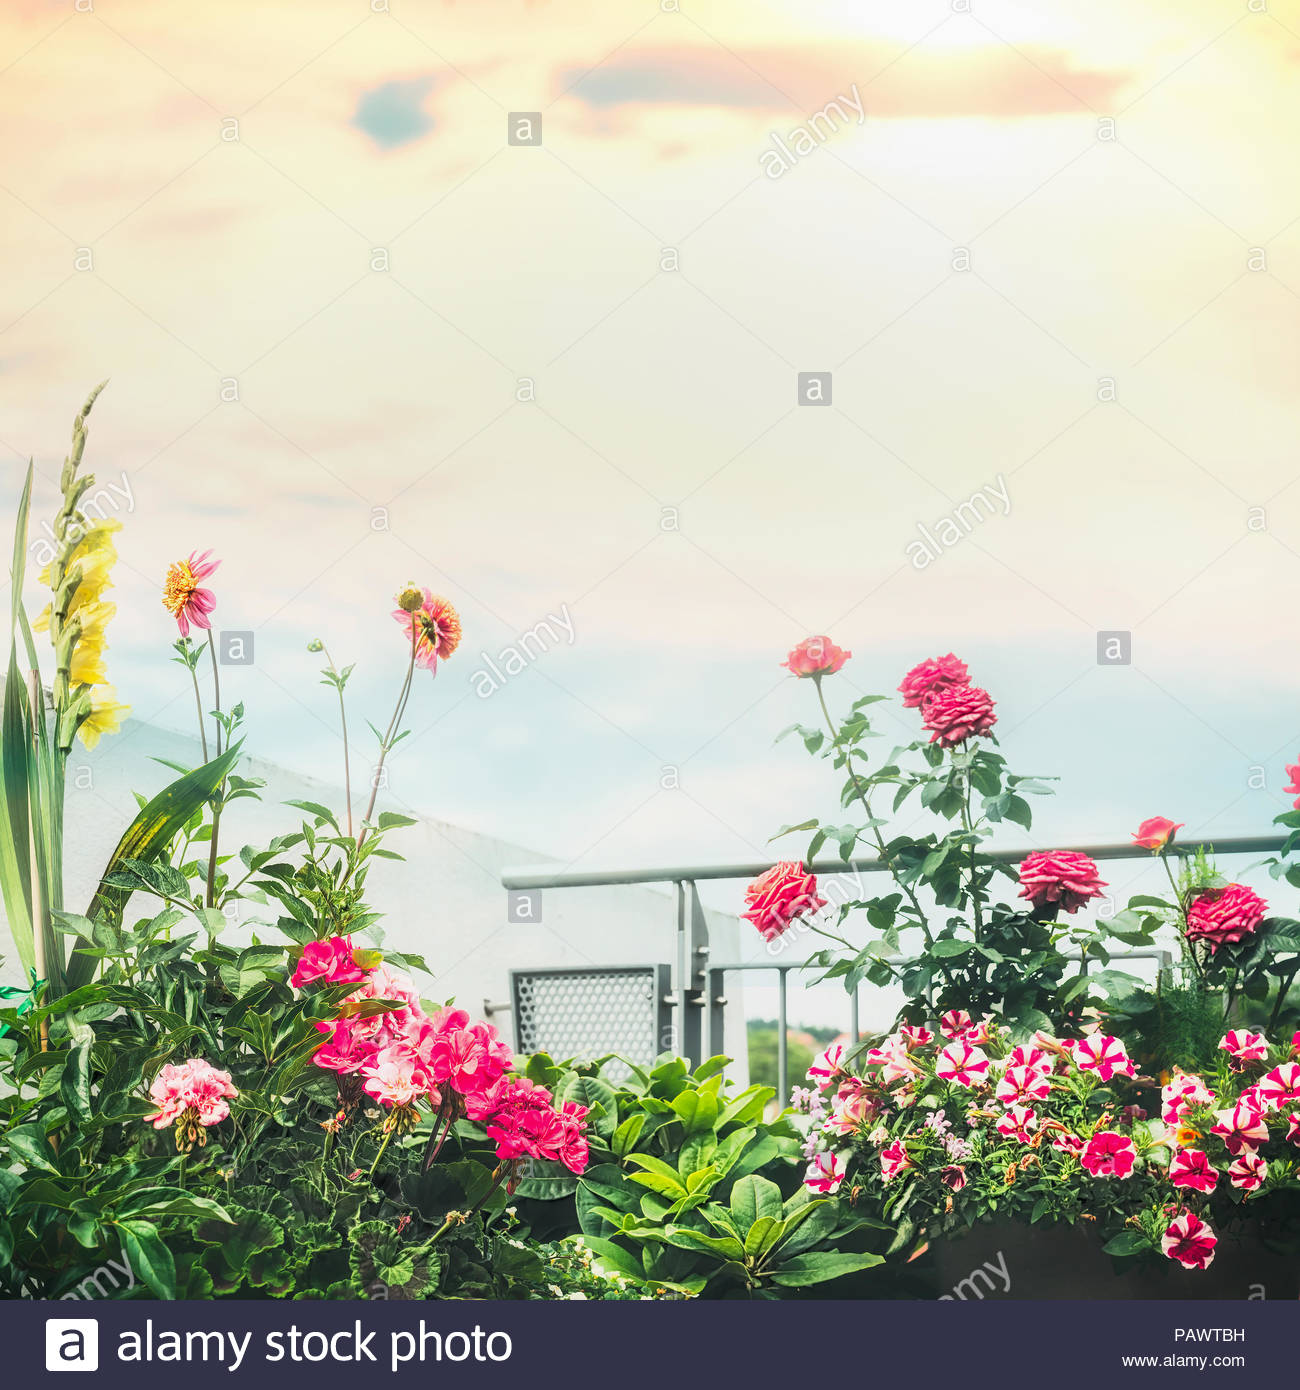 Beautiful flowers blooming on a sunny day stock photo 213238917 alamy beautiful flowers blooming on a sunny day izmirmasajfo